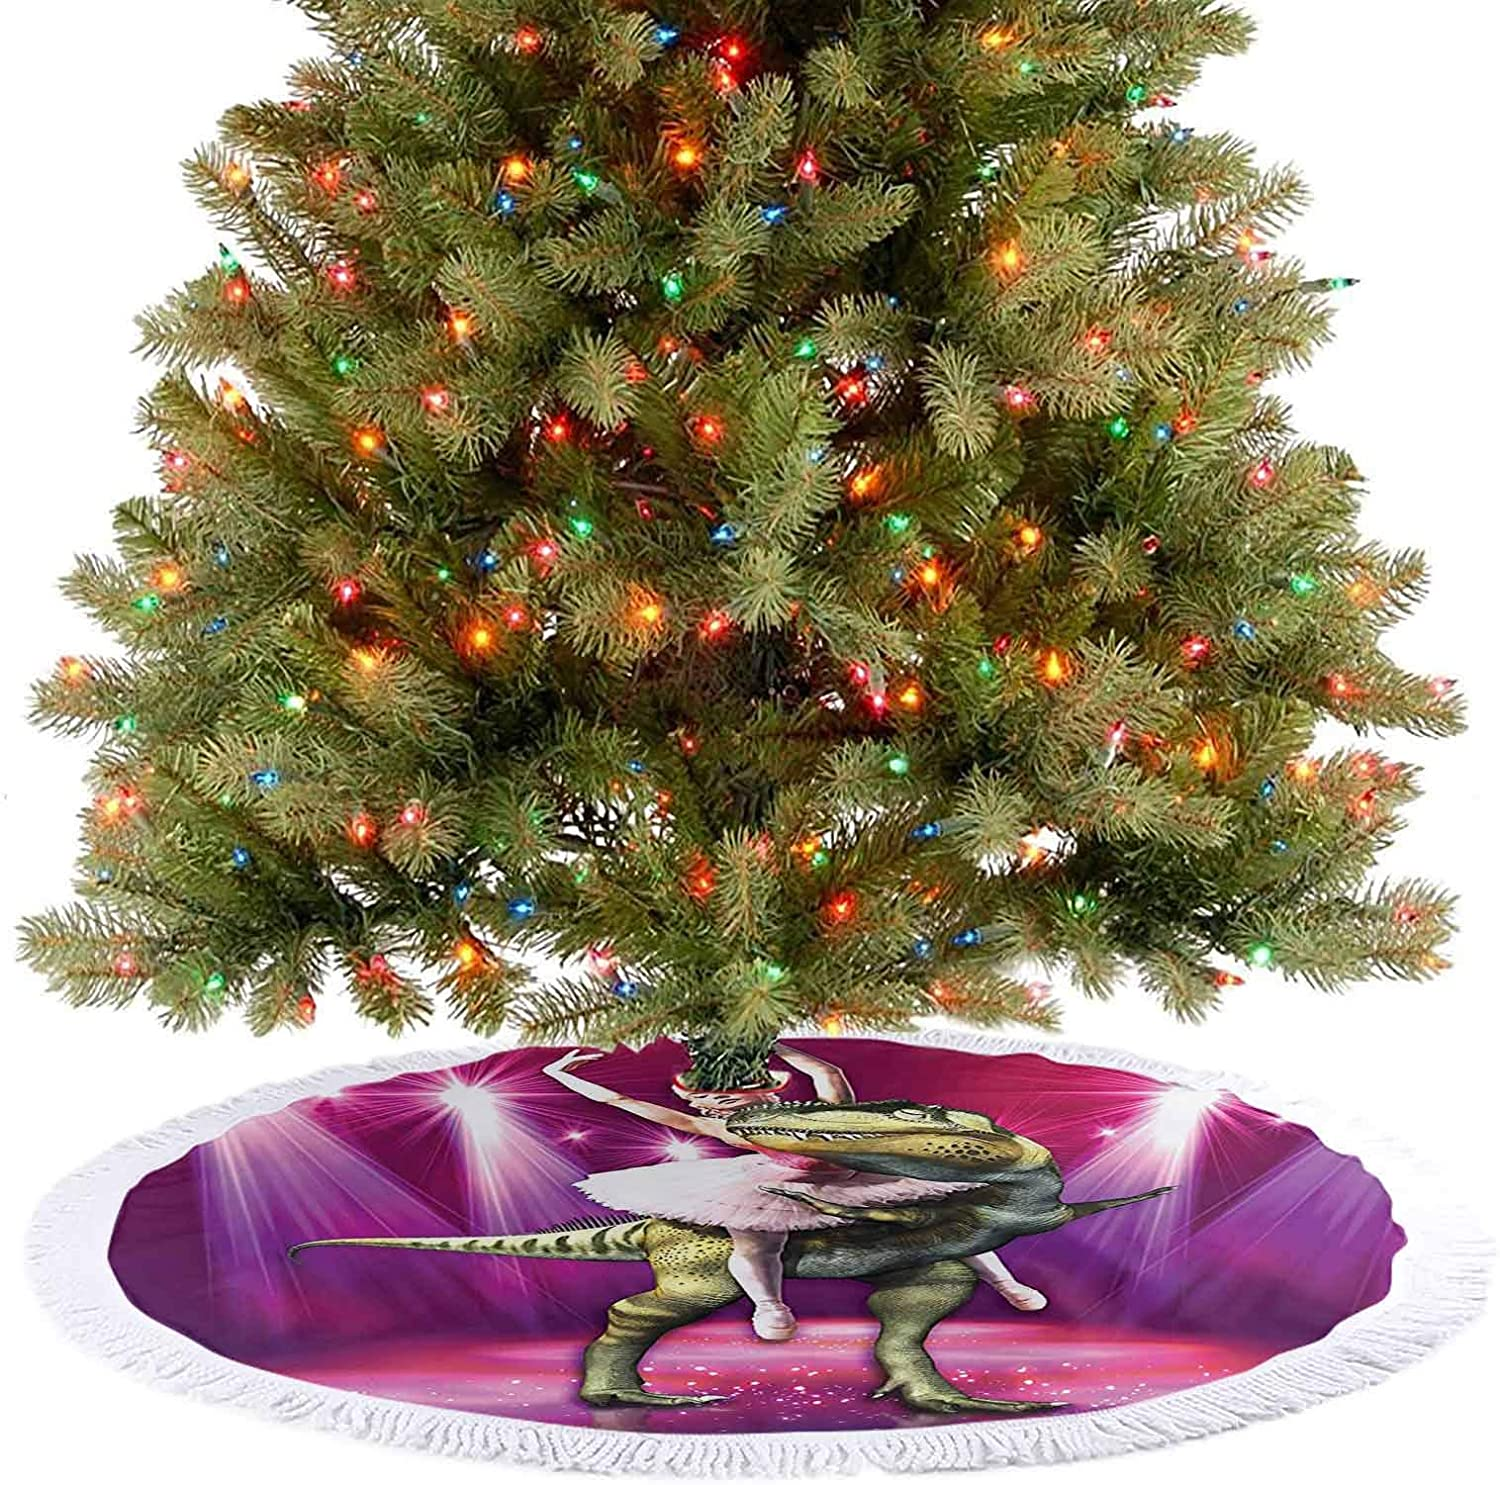 Adorise Modern Tree Skirt Ballerina Dancing with a Dinosaur Under Neon Lights Stage Unusual Image Hot Pink Christmas Decoration for Xmas Holiday Party Decoration - 48 Inch